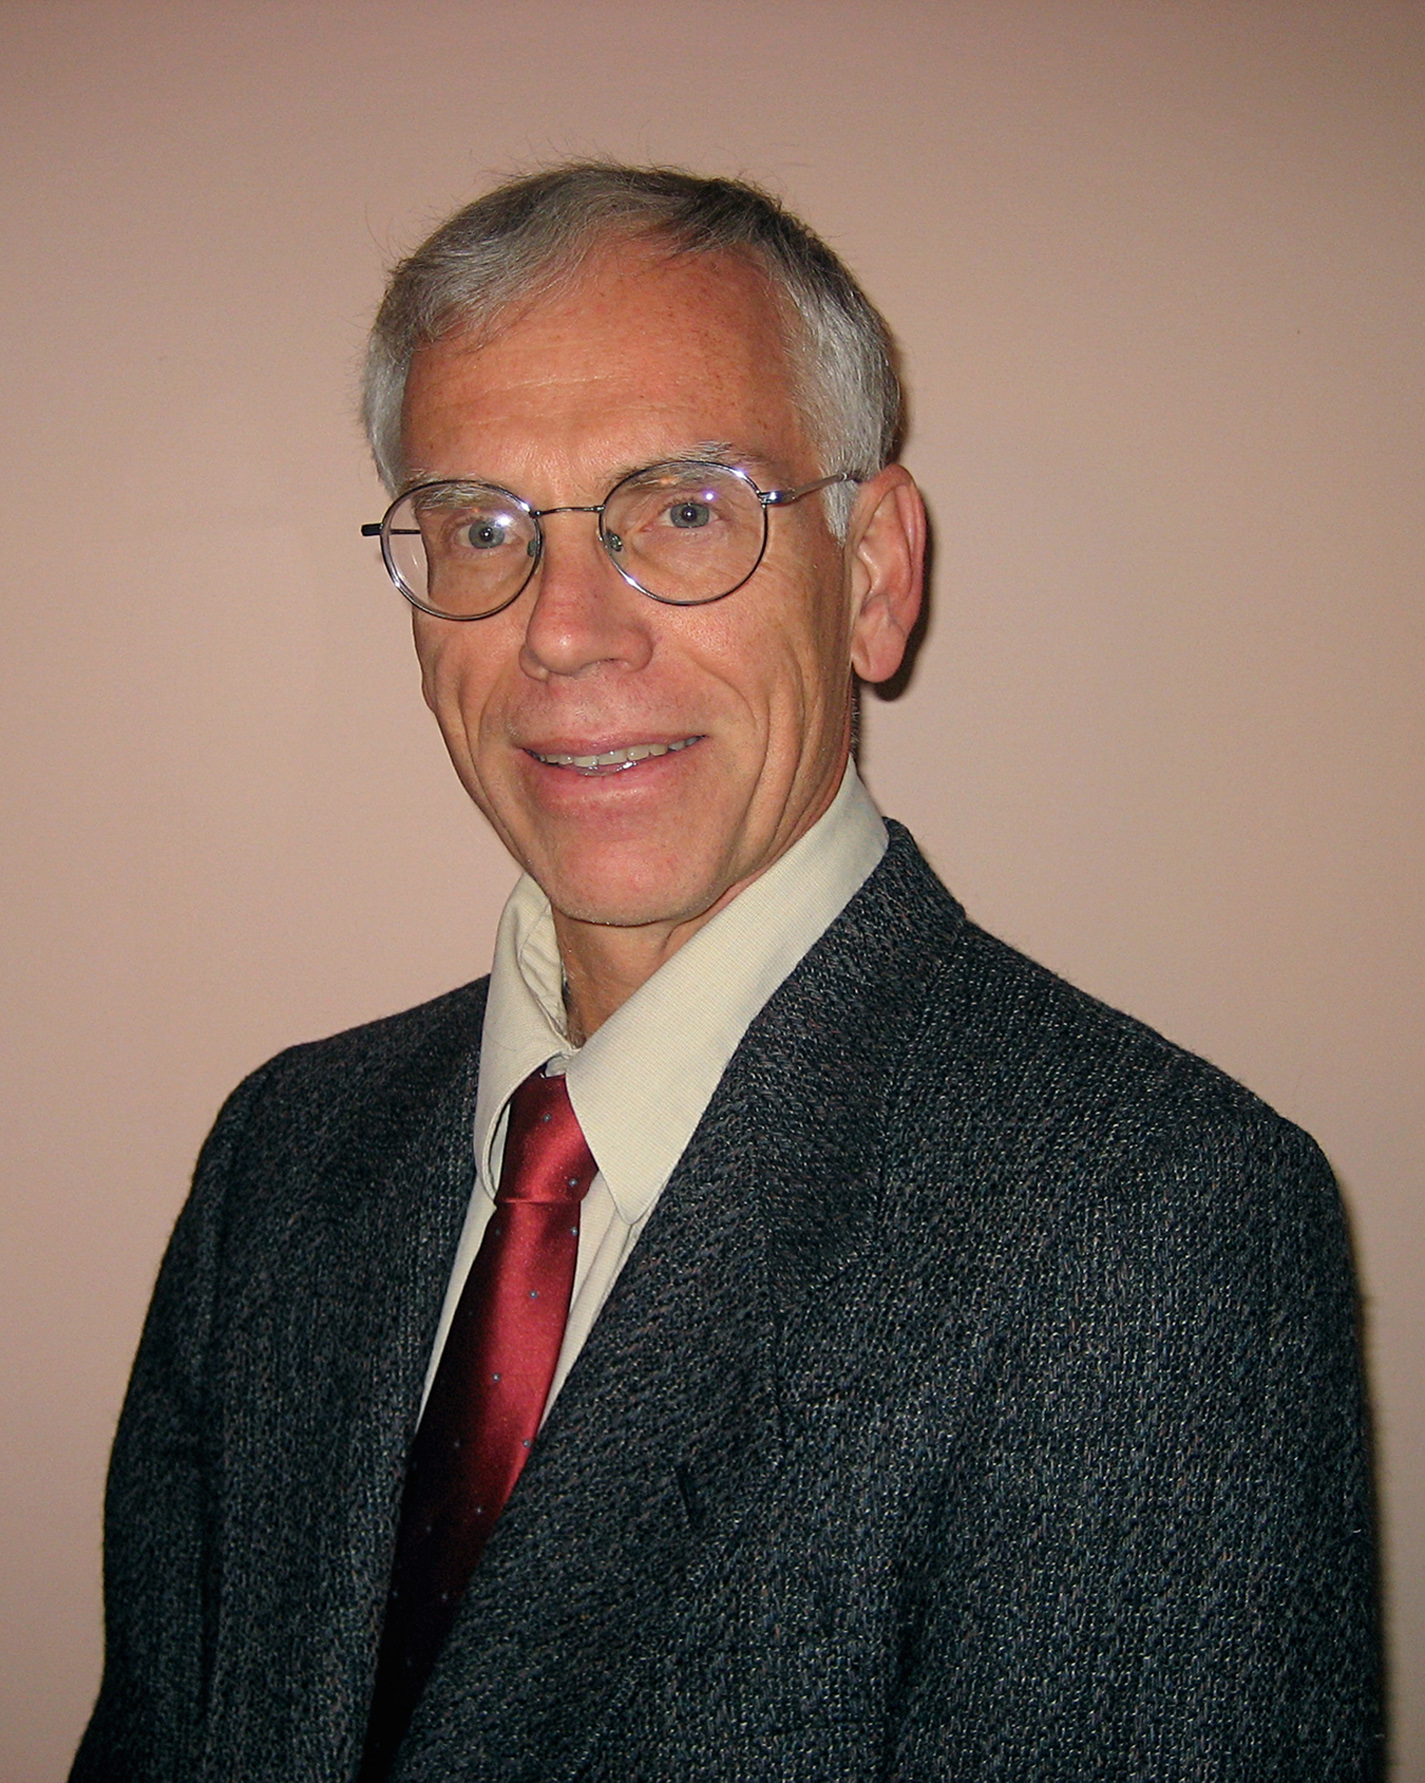 Peter Armentrout, distinguished professor of chemistry at the University of Utah